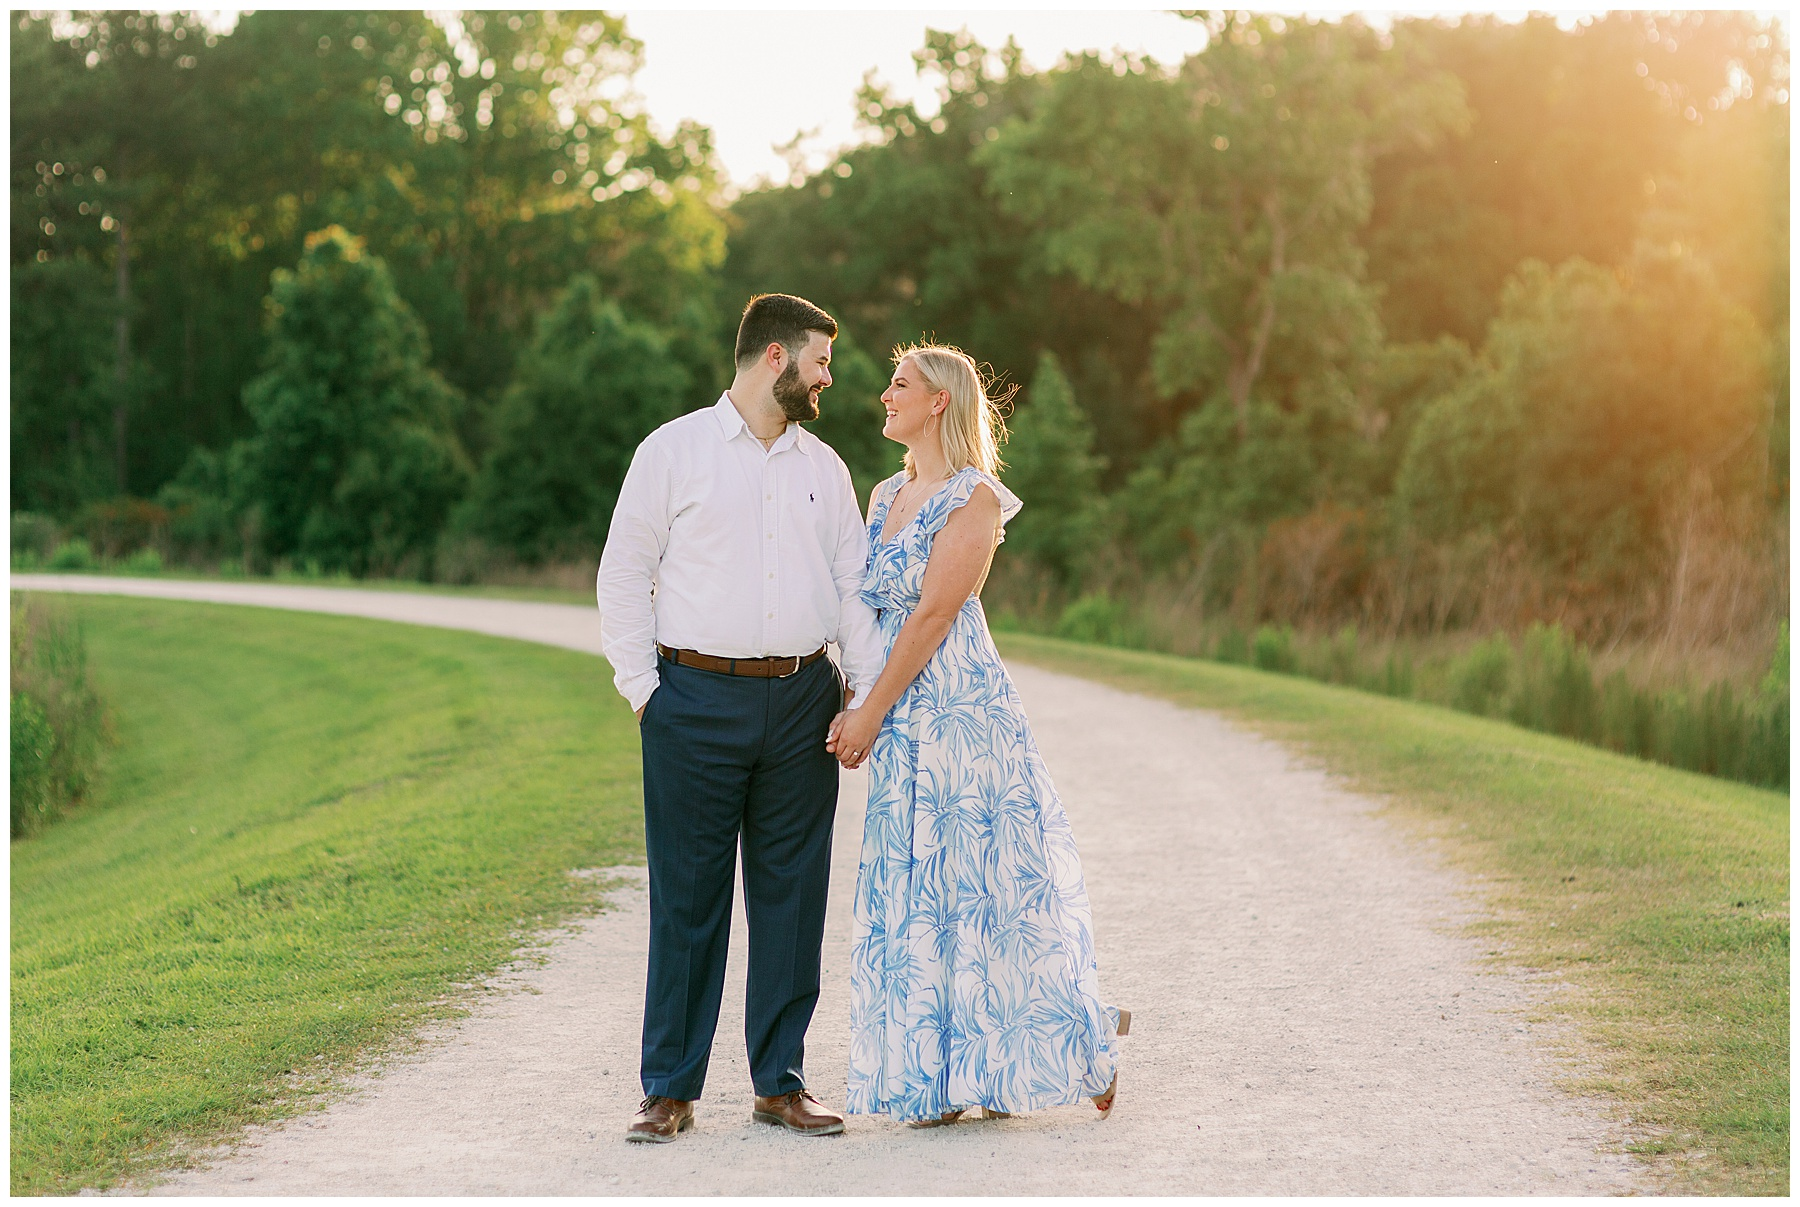 Guy and Girl look lovingly at each other holding hands on dirt path with golden glow.